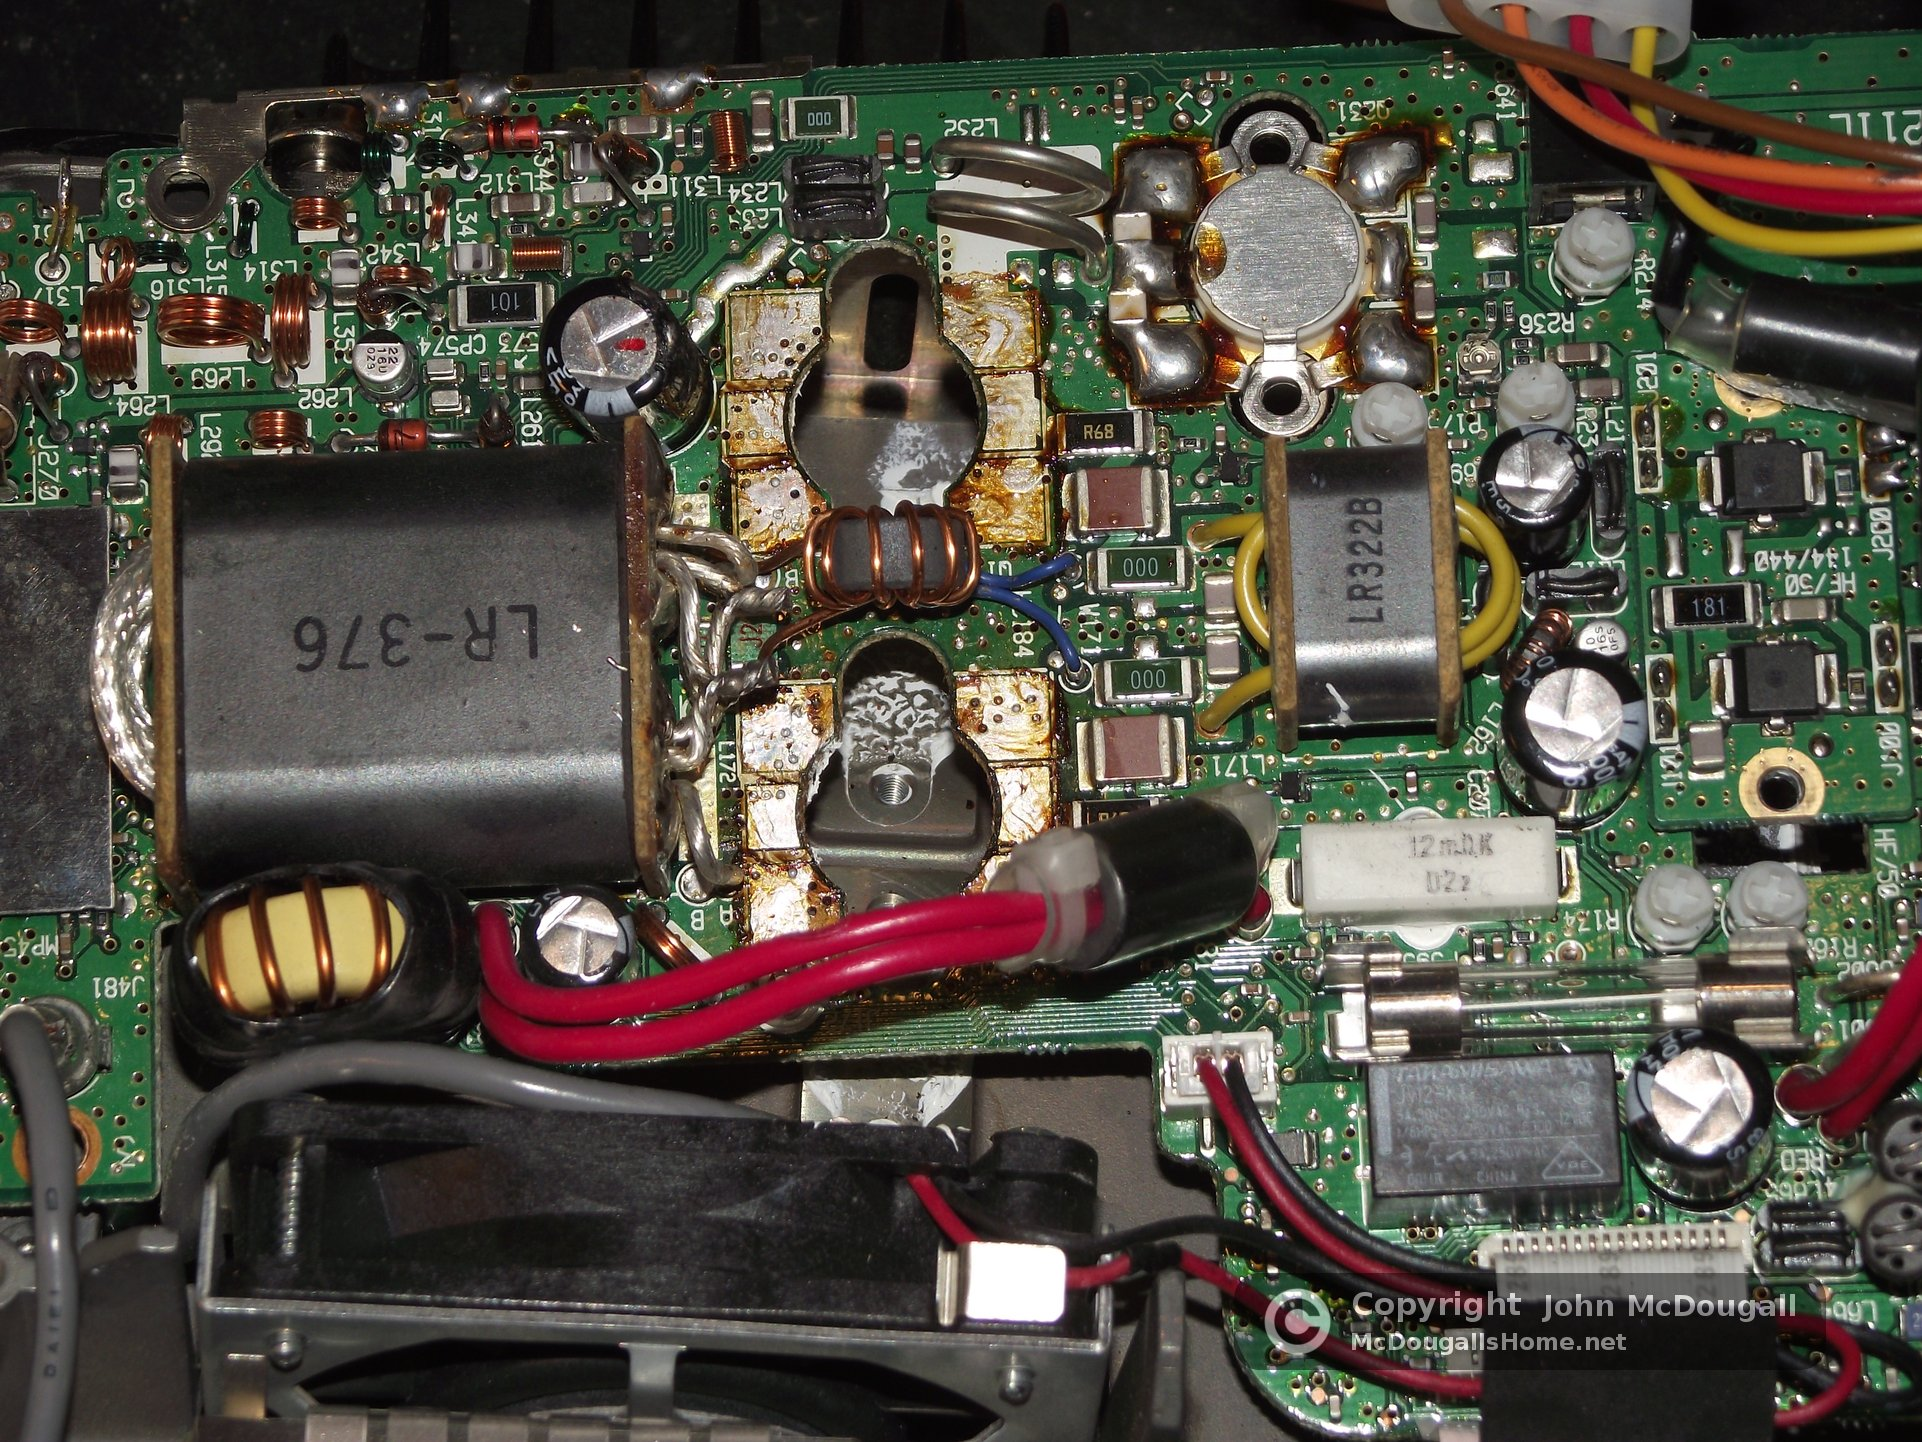 Repairing My Icom Ic 706mkiig Final Amp Board Picture Of Old Circuit With Finals Removed And Ready For Modifications